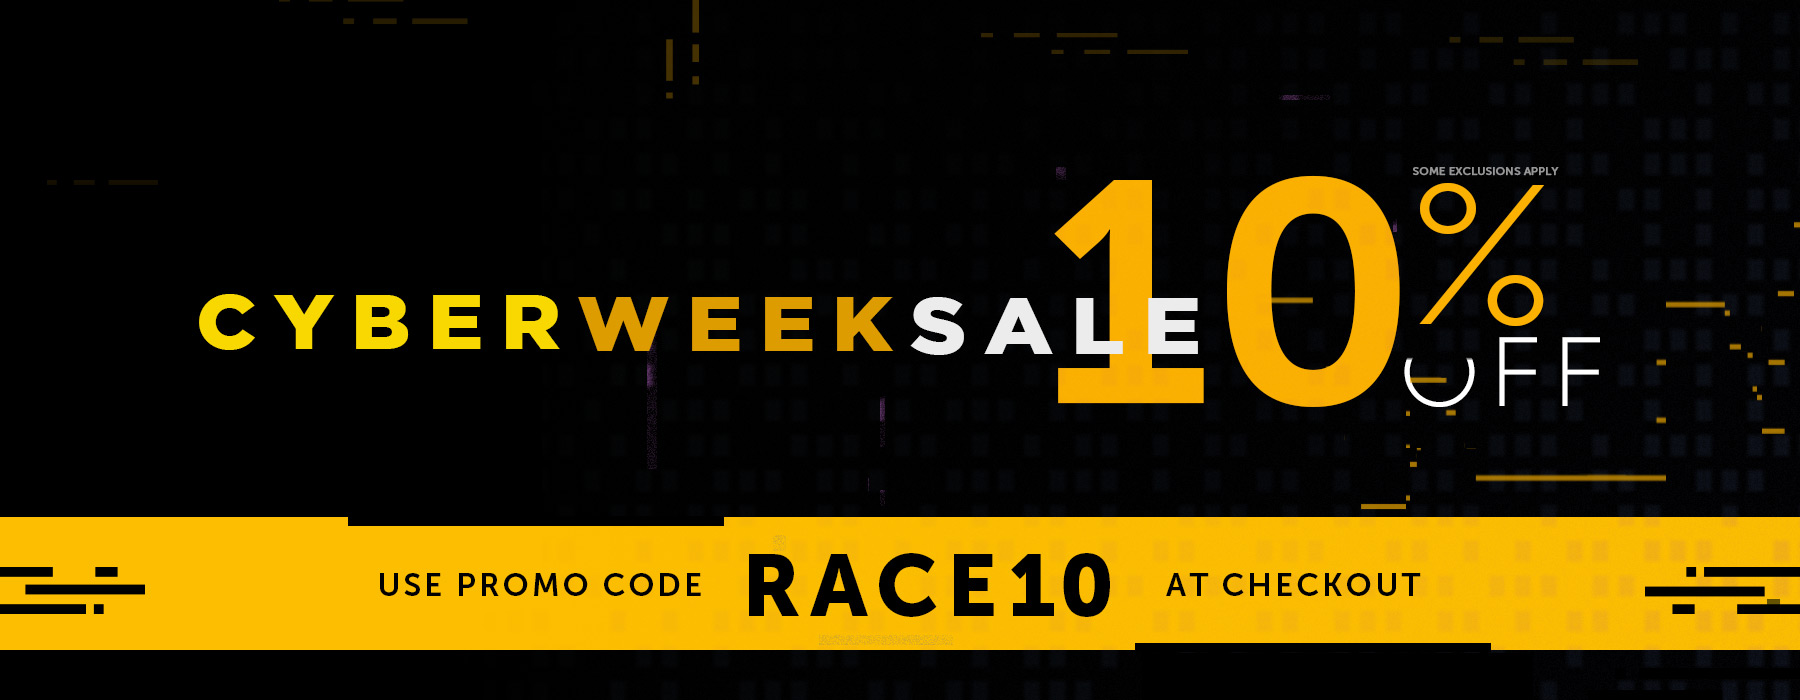 Shop Cyber Week using our RACE10 promo code!